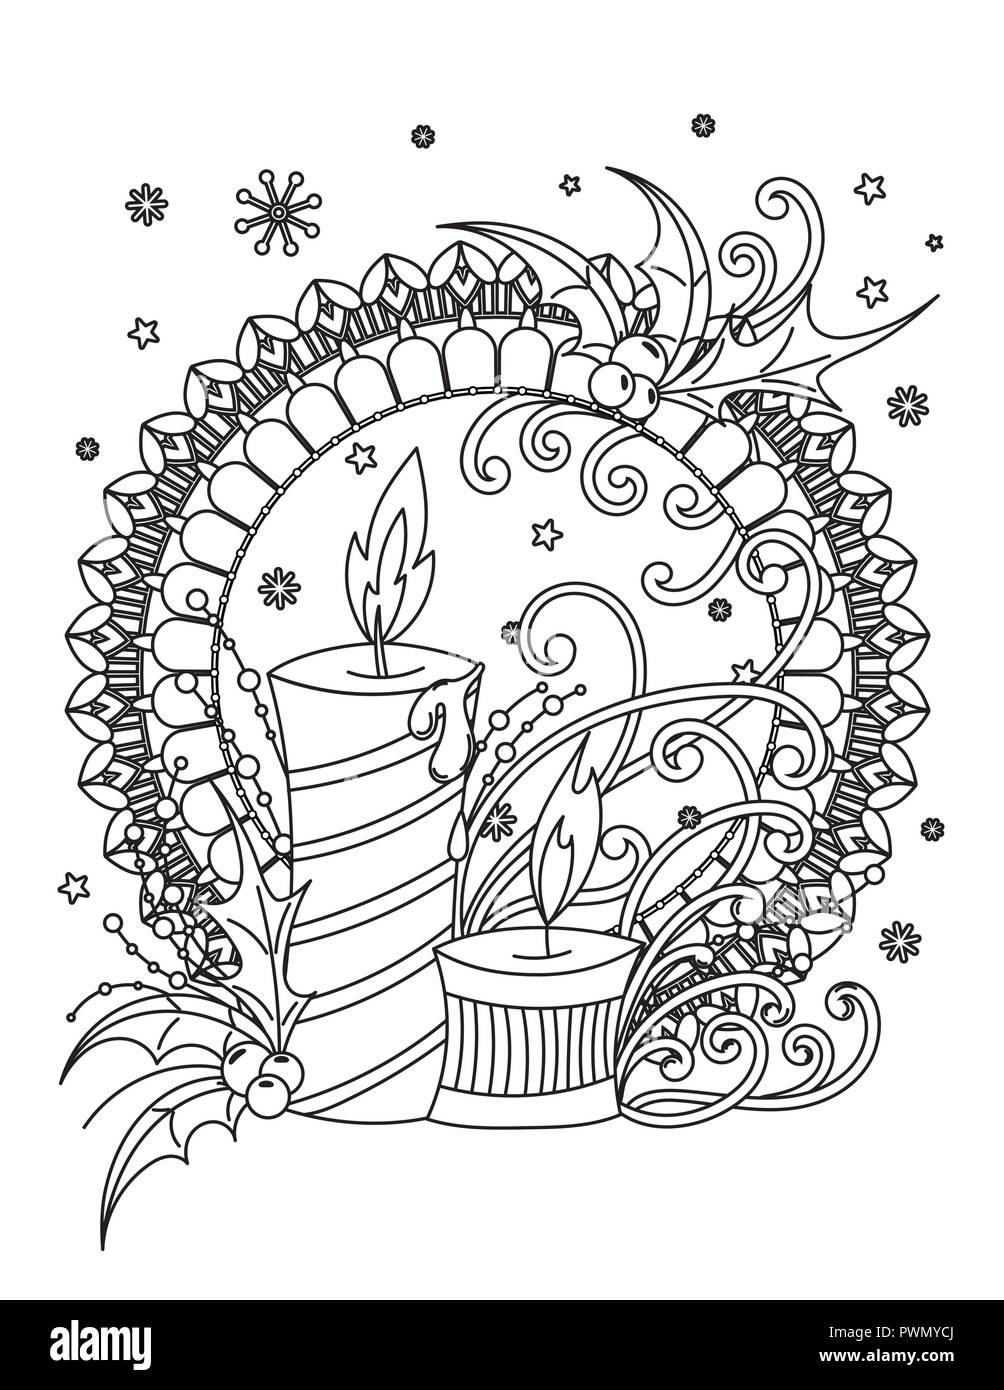 christmas mandala coloring page adult coloring book holiday decor candales hilly barries ribbons and snowflakes hand drawn vector illustration